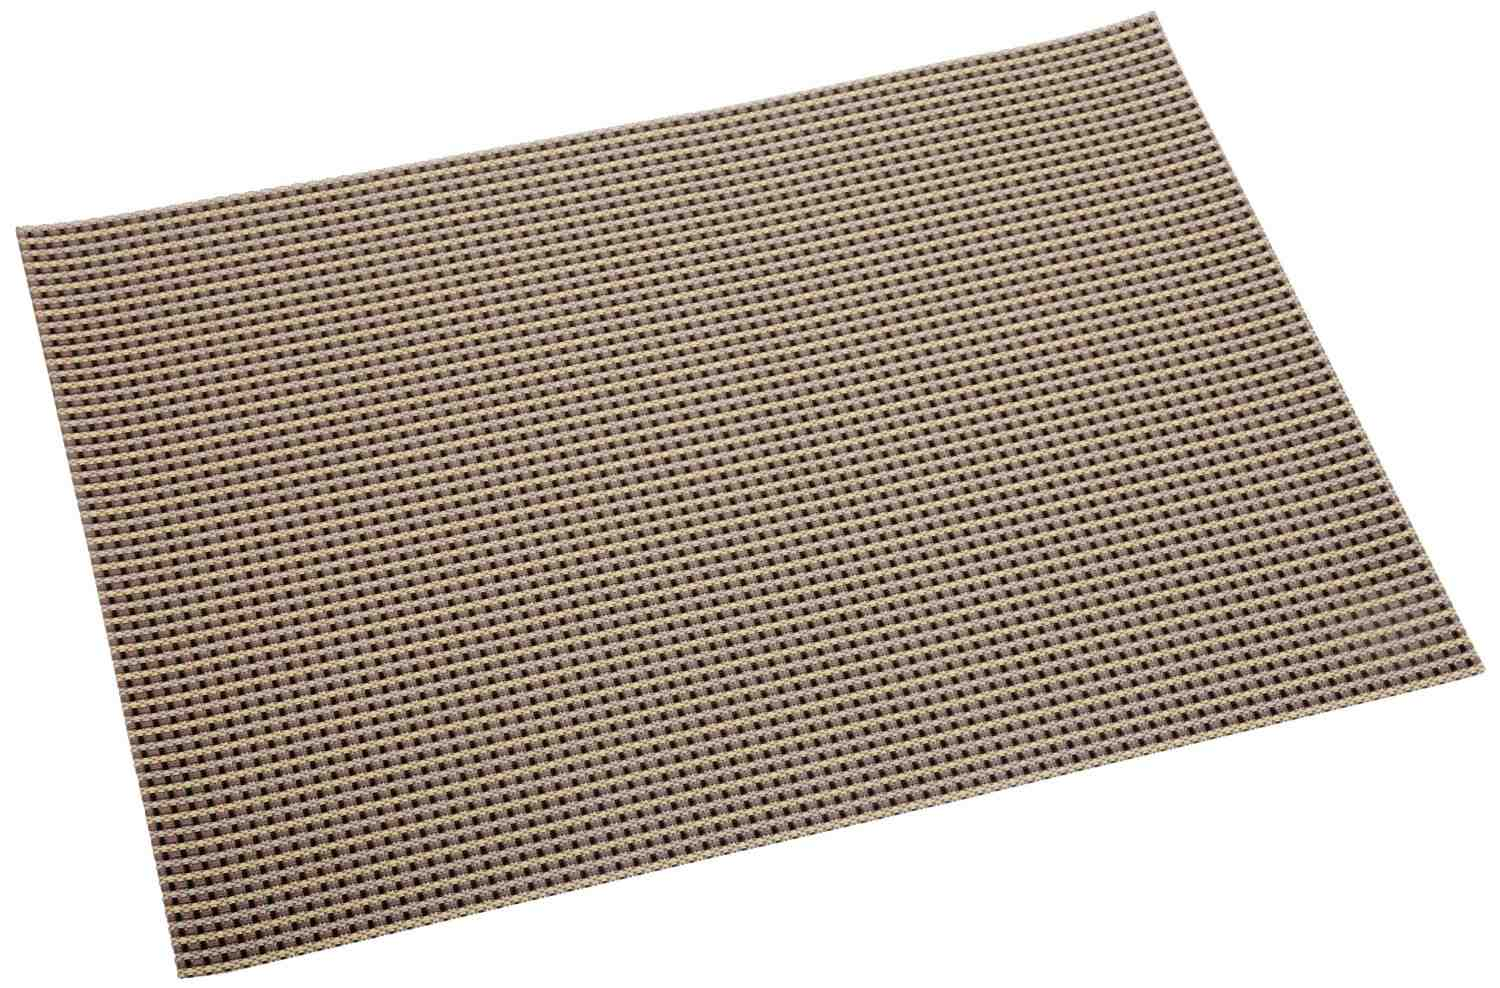 TATEhome Polyvinyl Placemat | Taupe Tweed